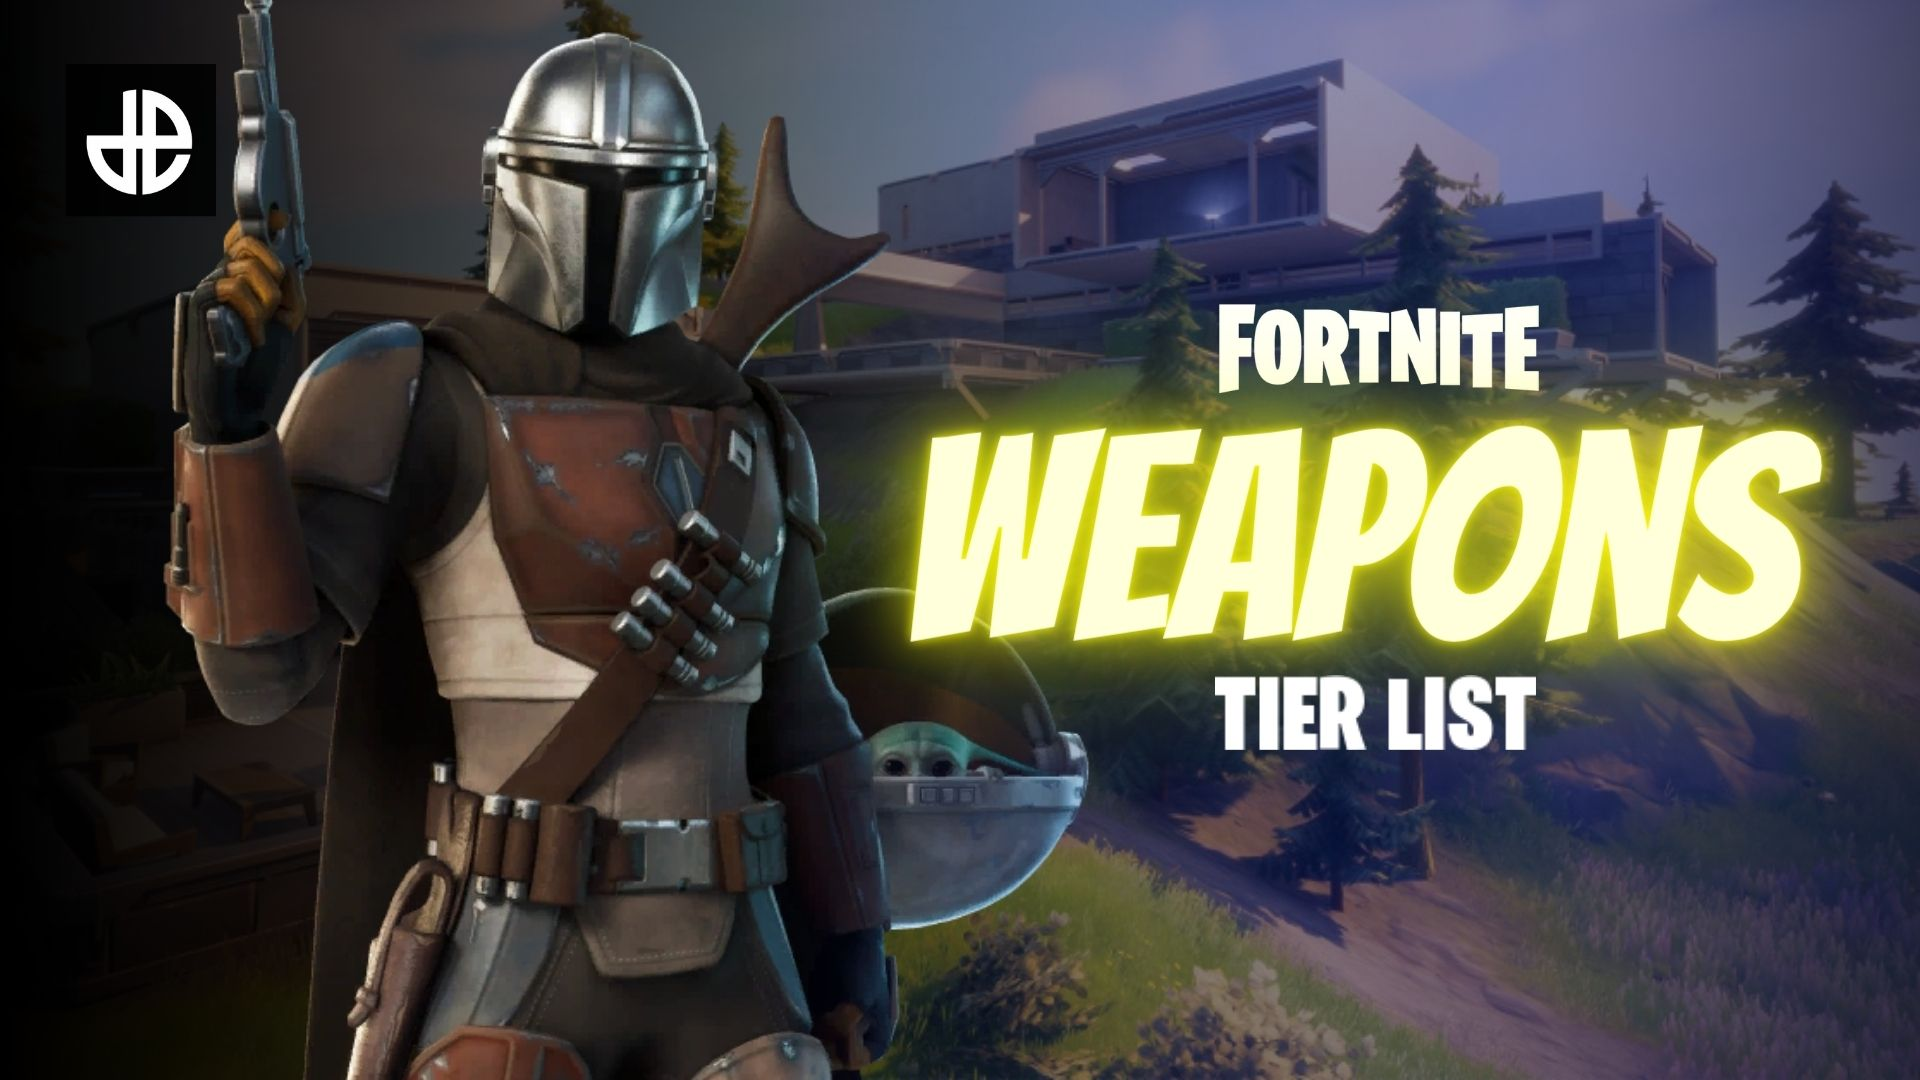 Fortnite weapons tier list image